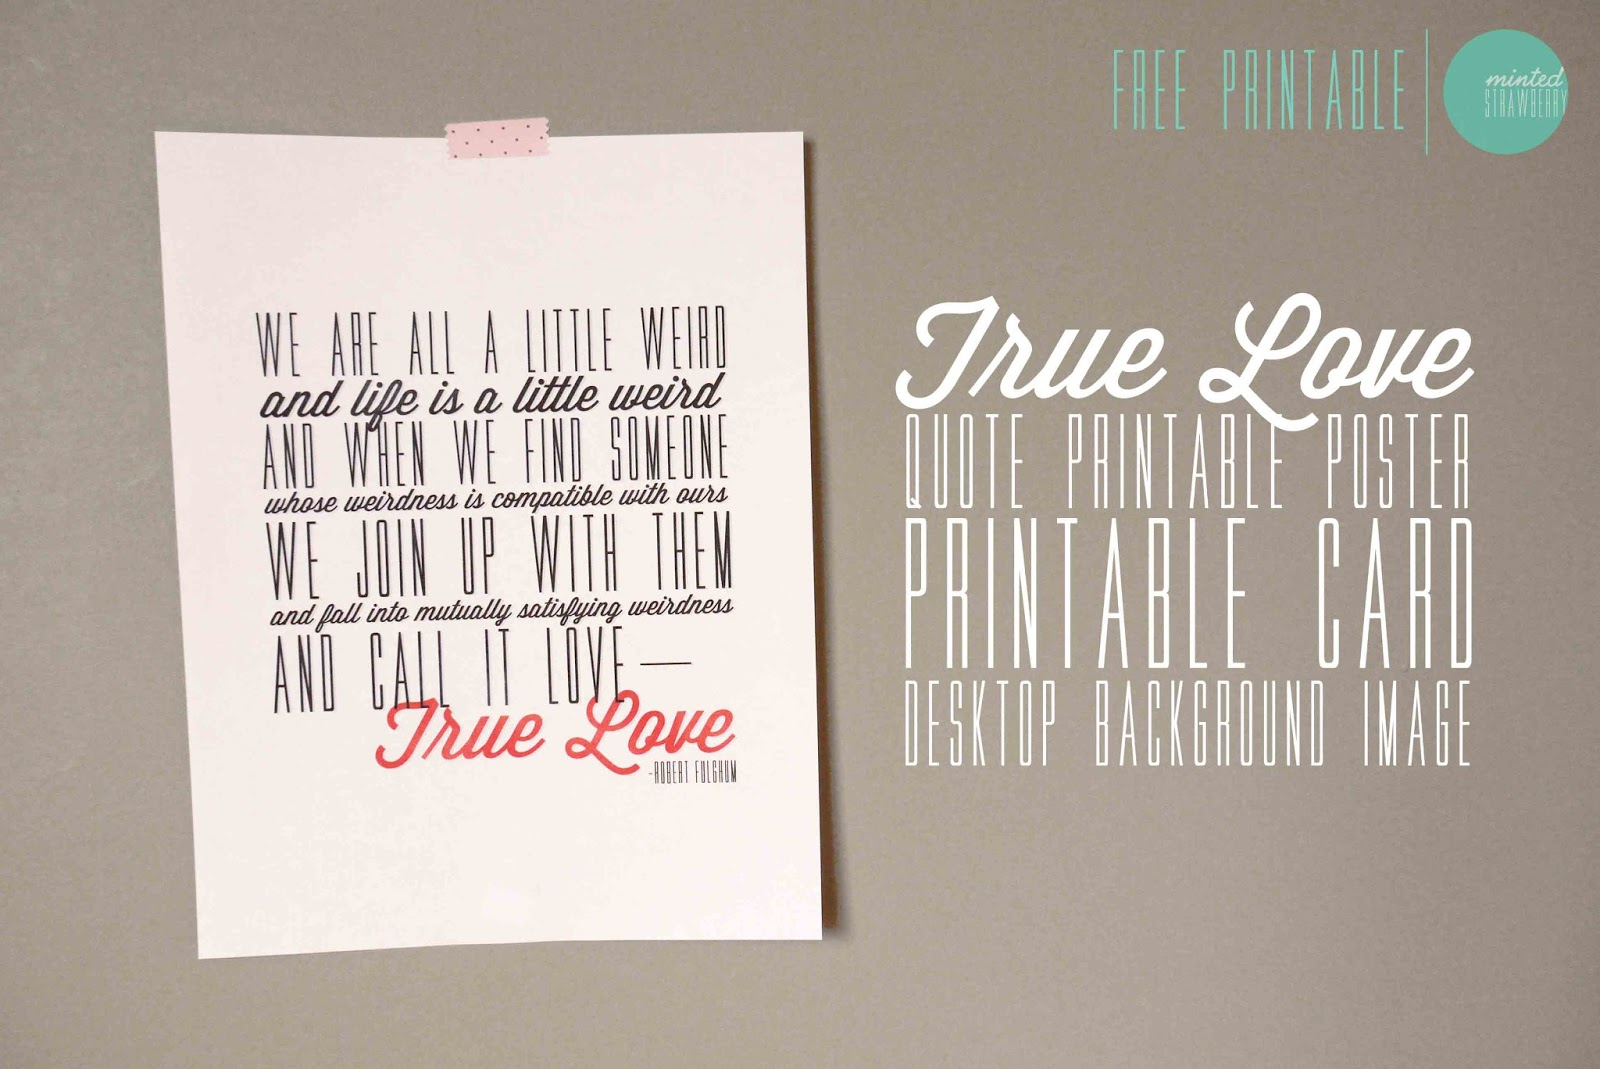 Printable Love Quotes Mesmerizing Free Printable Robert Fulghum's 'true Love' Quote Poster  Minted